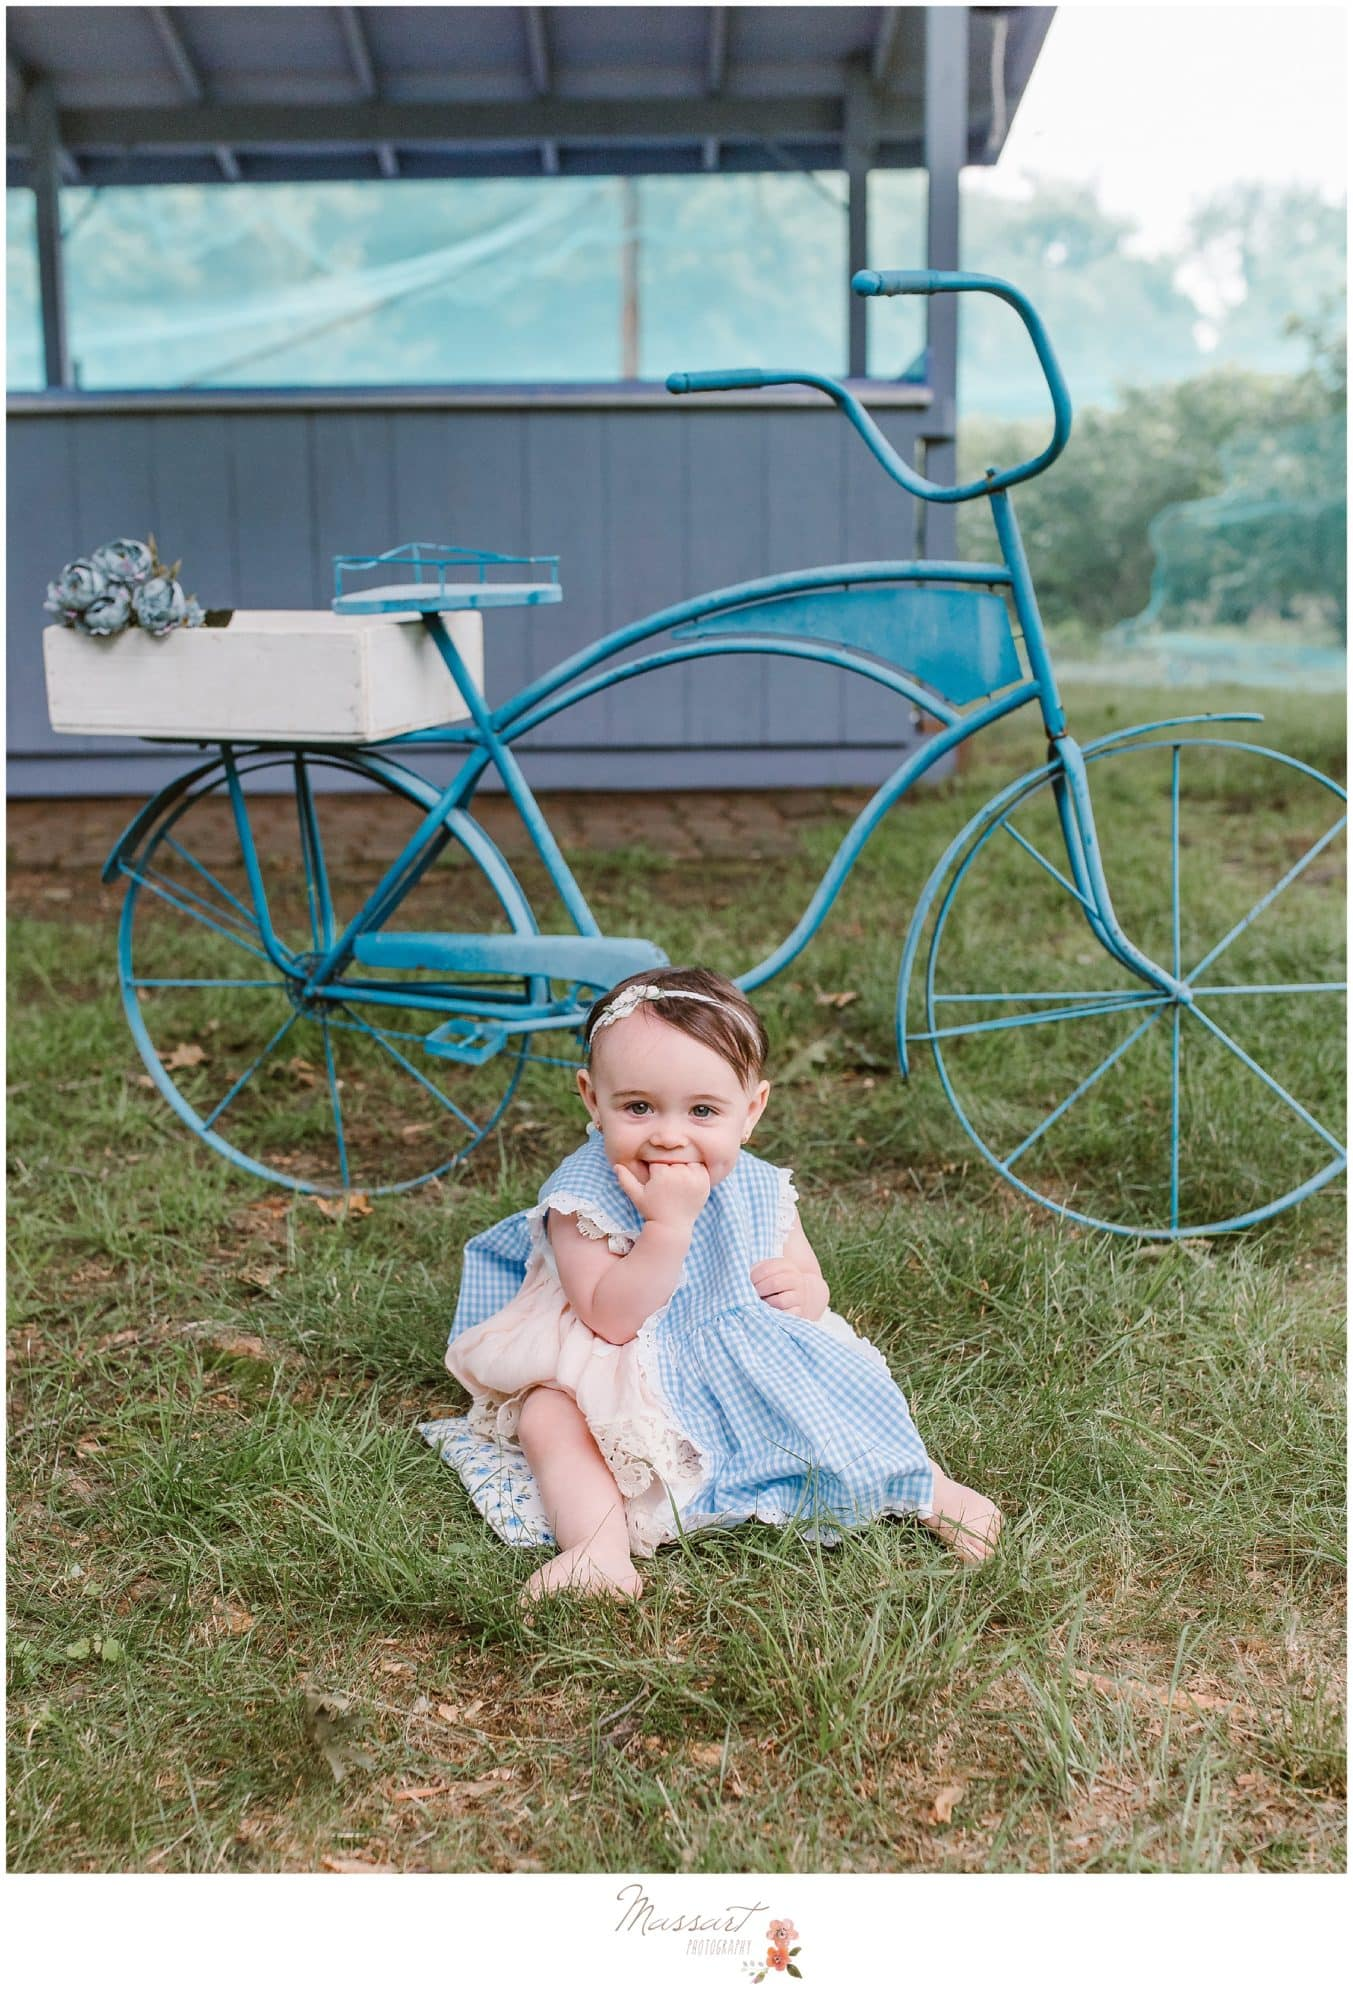 Baby girl sits in front of rustic bicycle during milestone portrait session photographed by Massart Photography RI